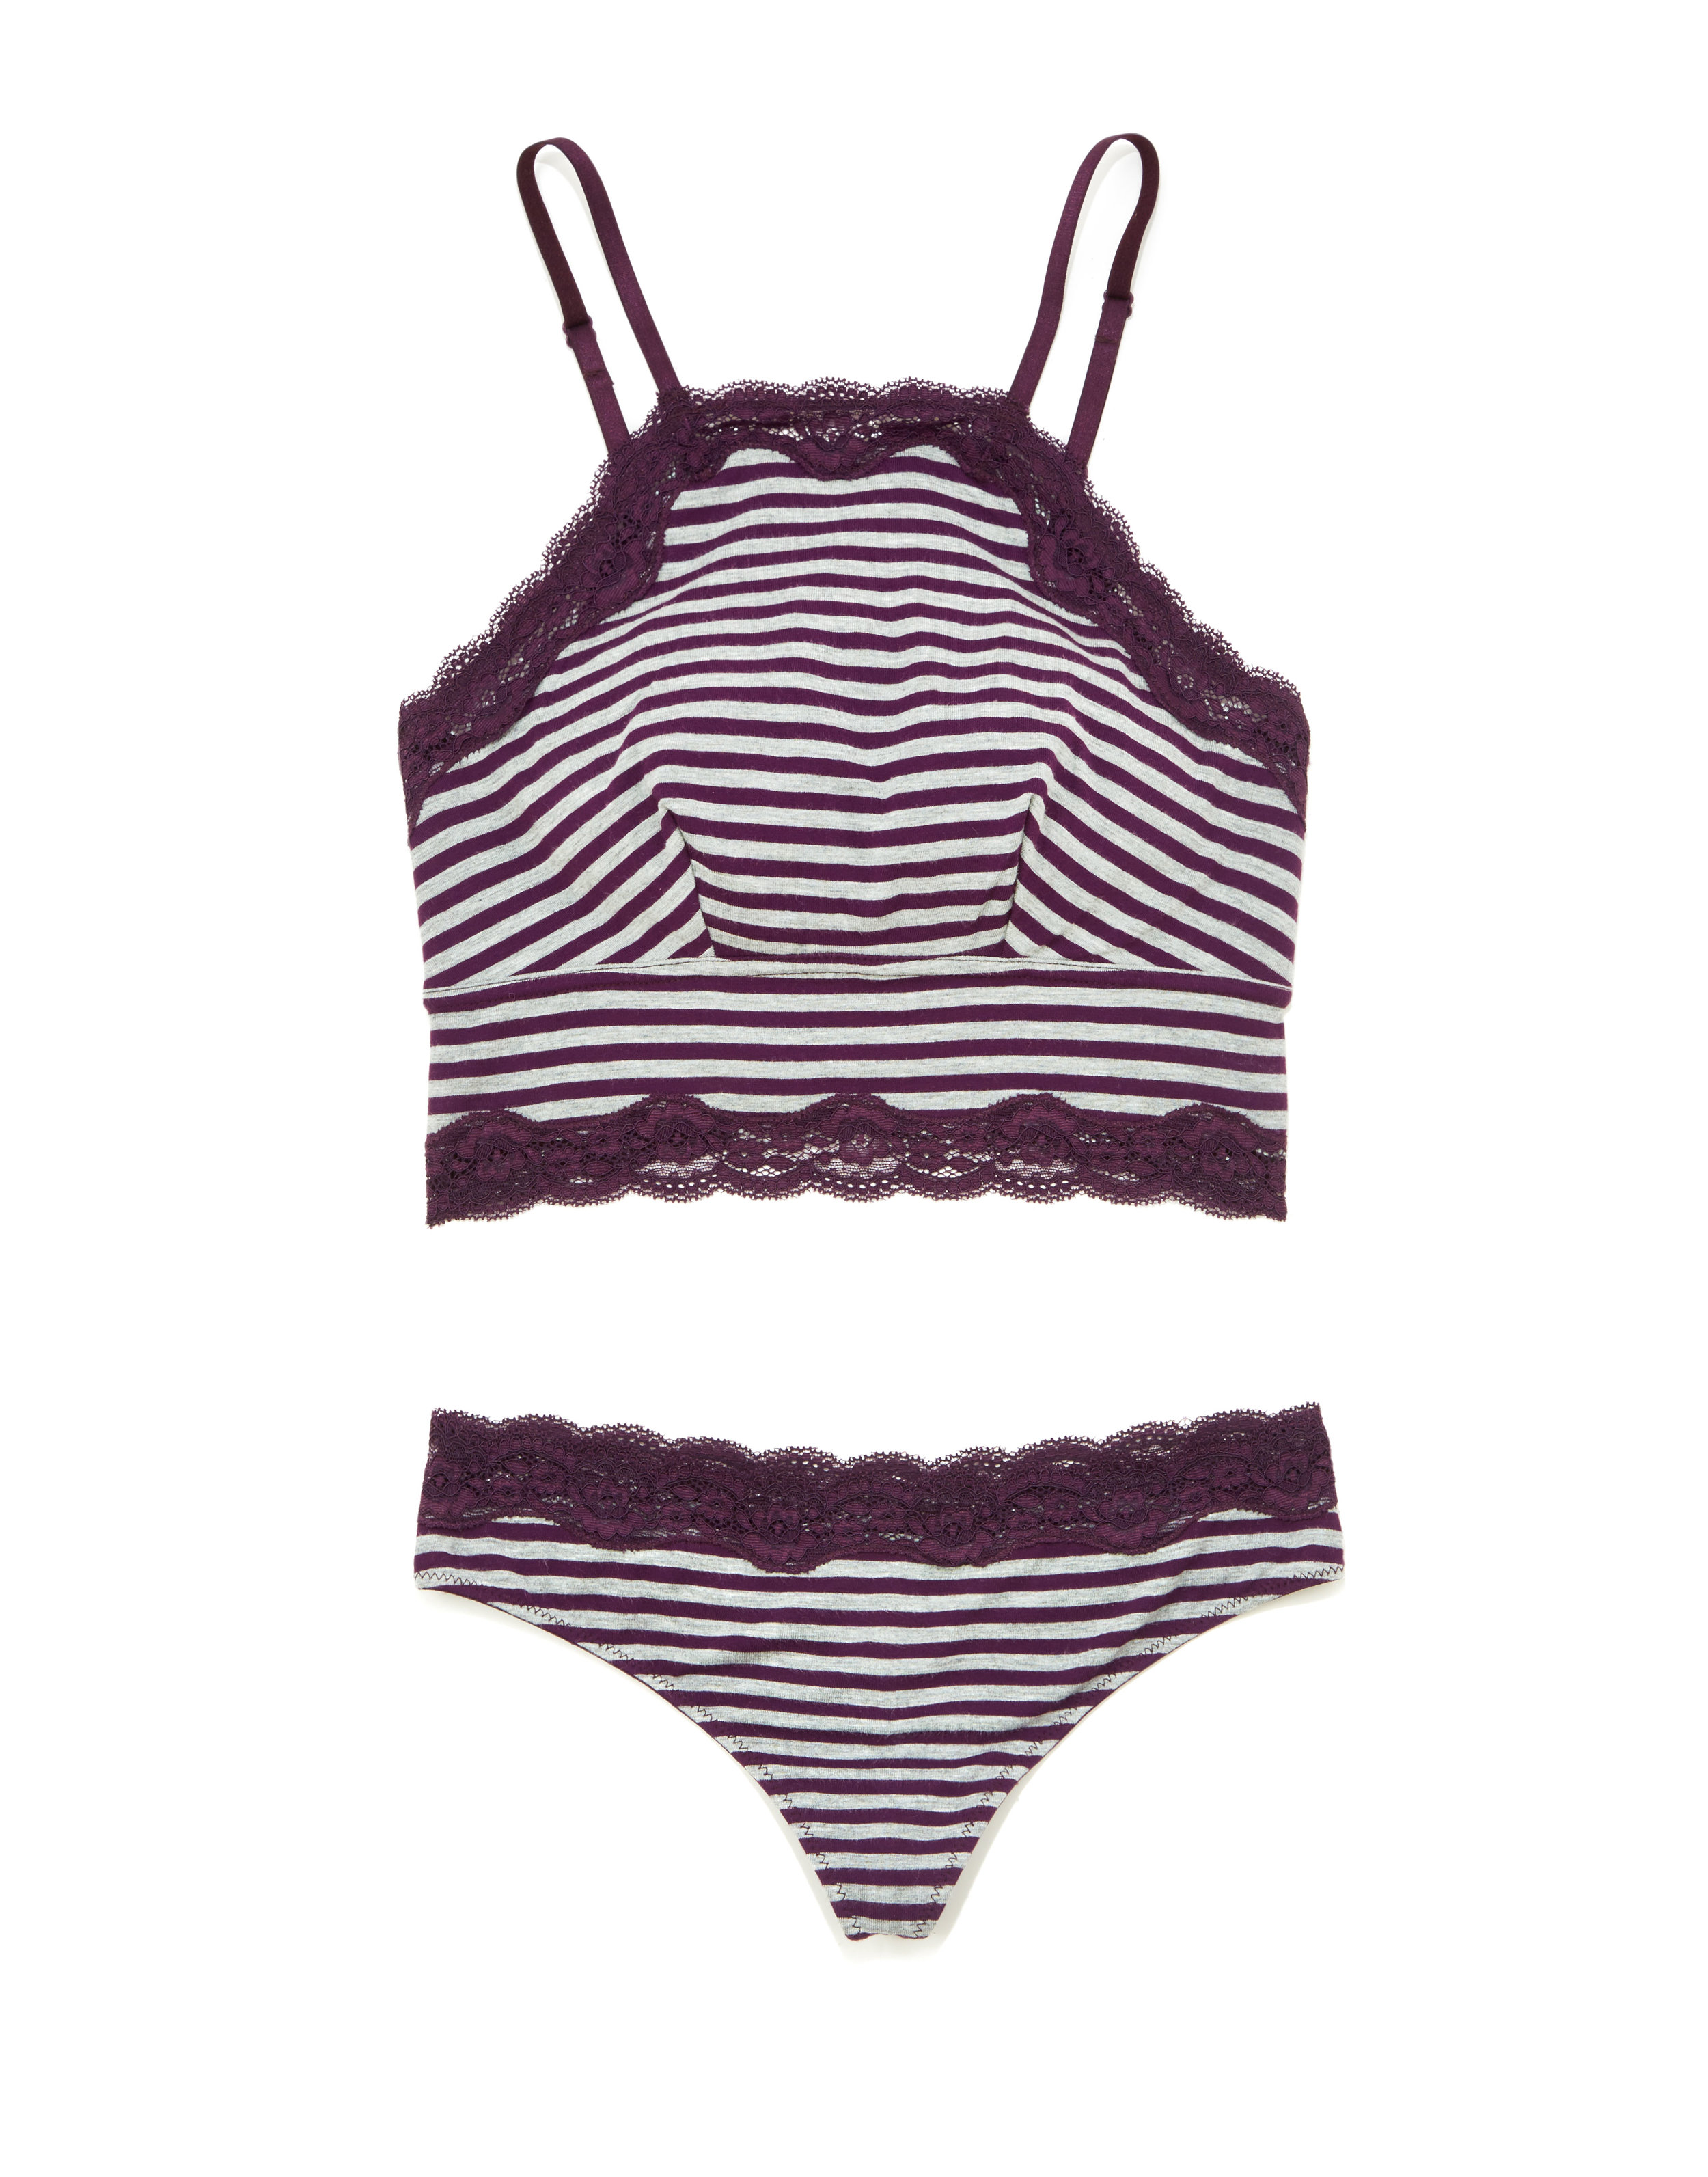 fa17_still_narby_unlined_thong_web_narby-purple-unlined-bralette-for-women.jpg